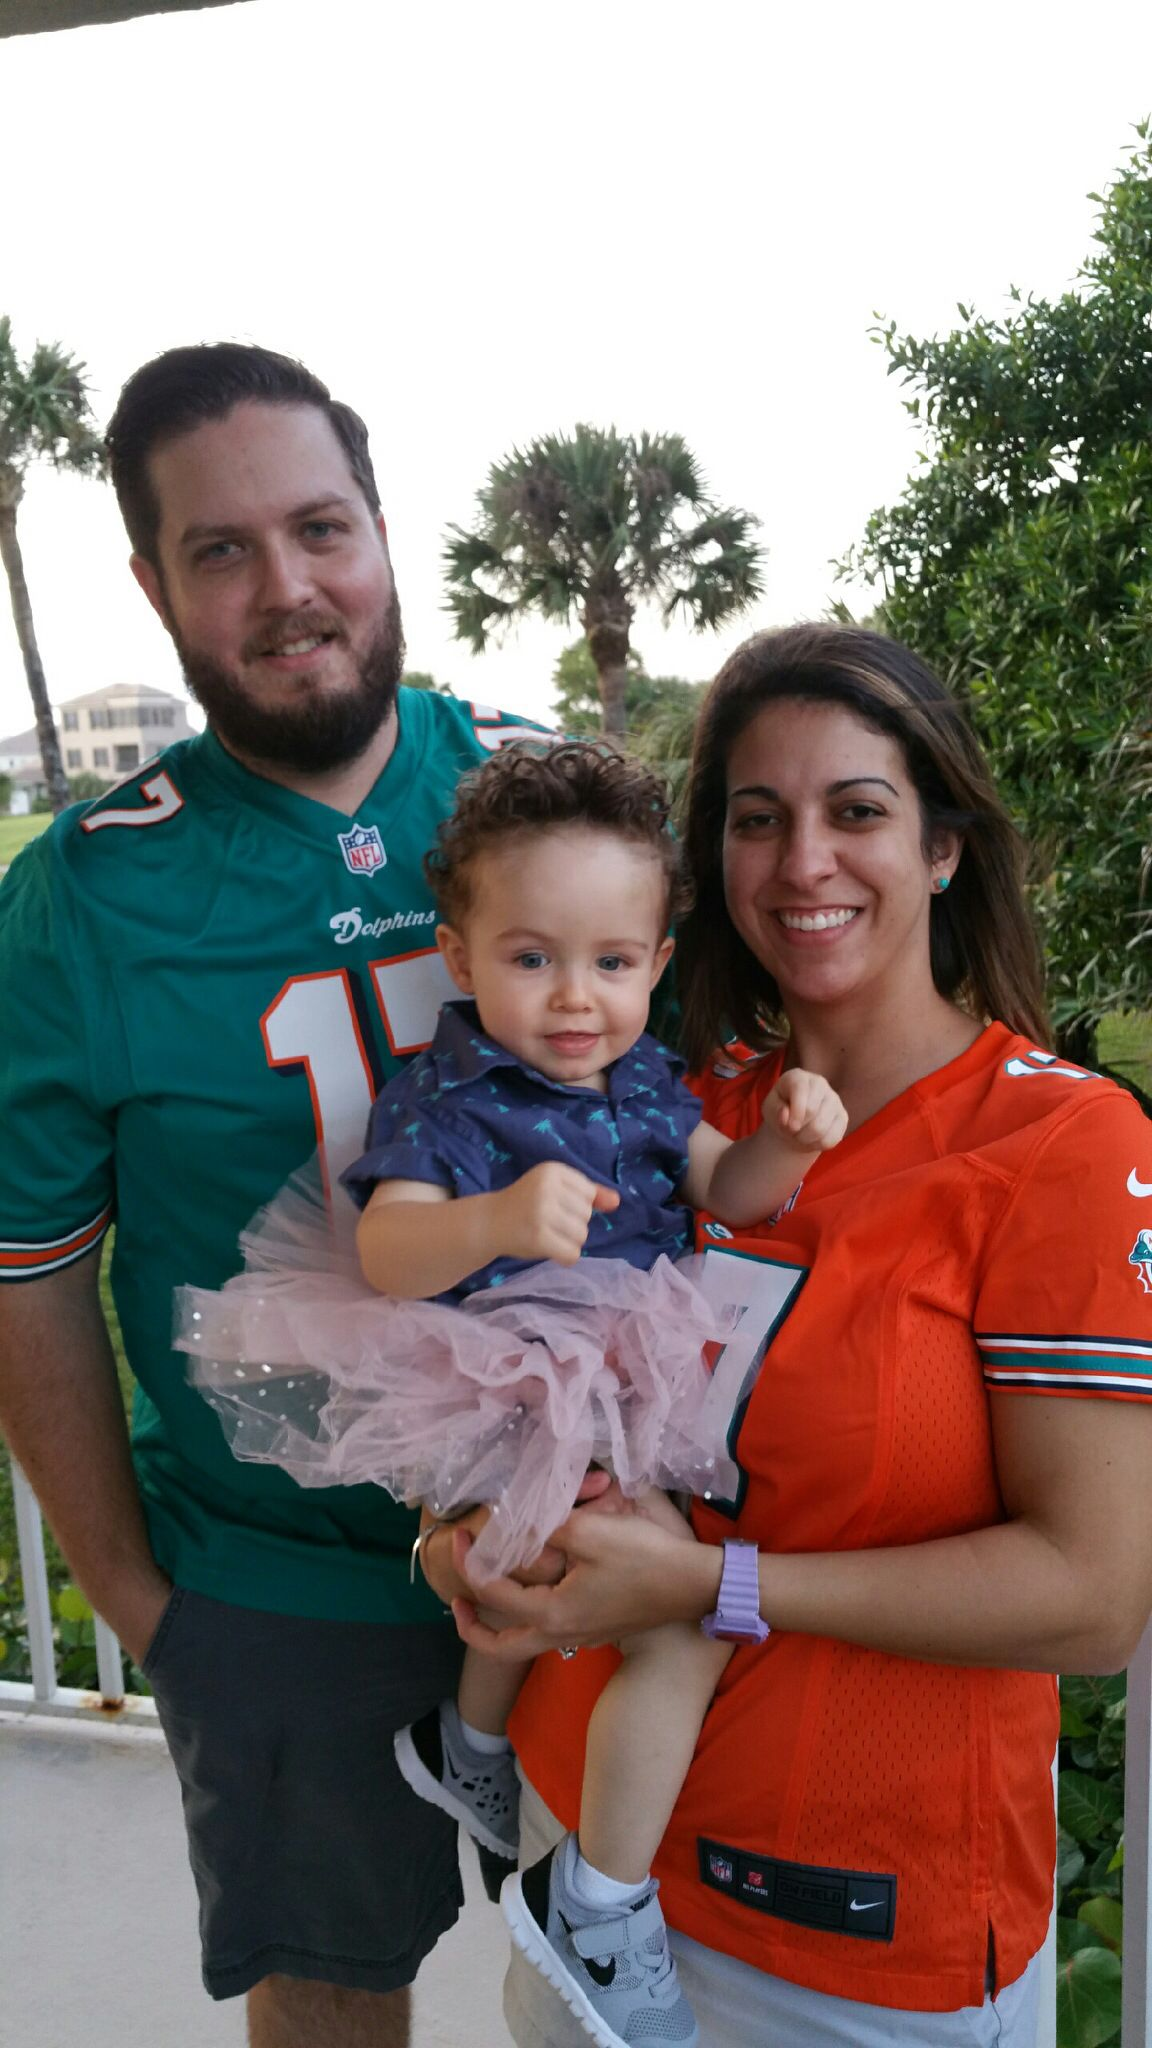 family halloween costume. ace ventura pet detective. miami dolphins